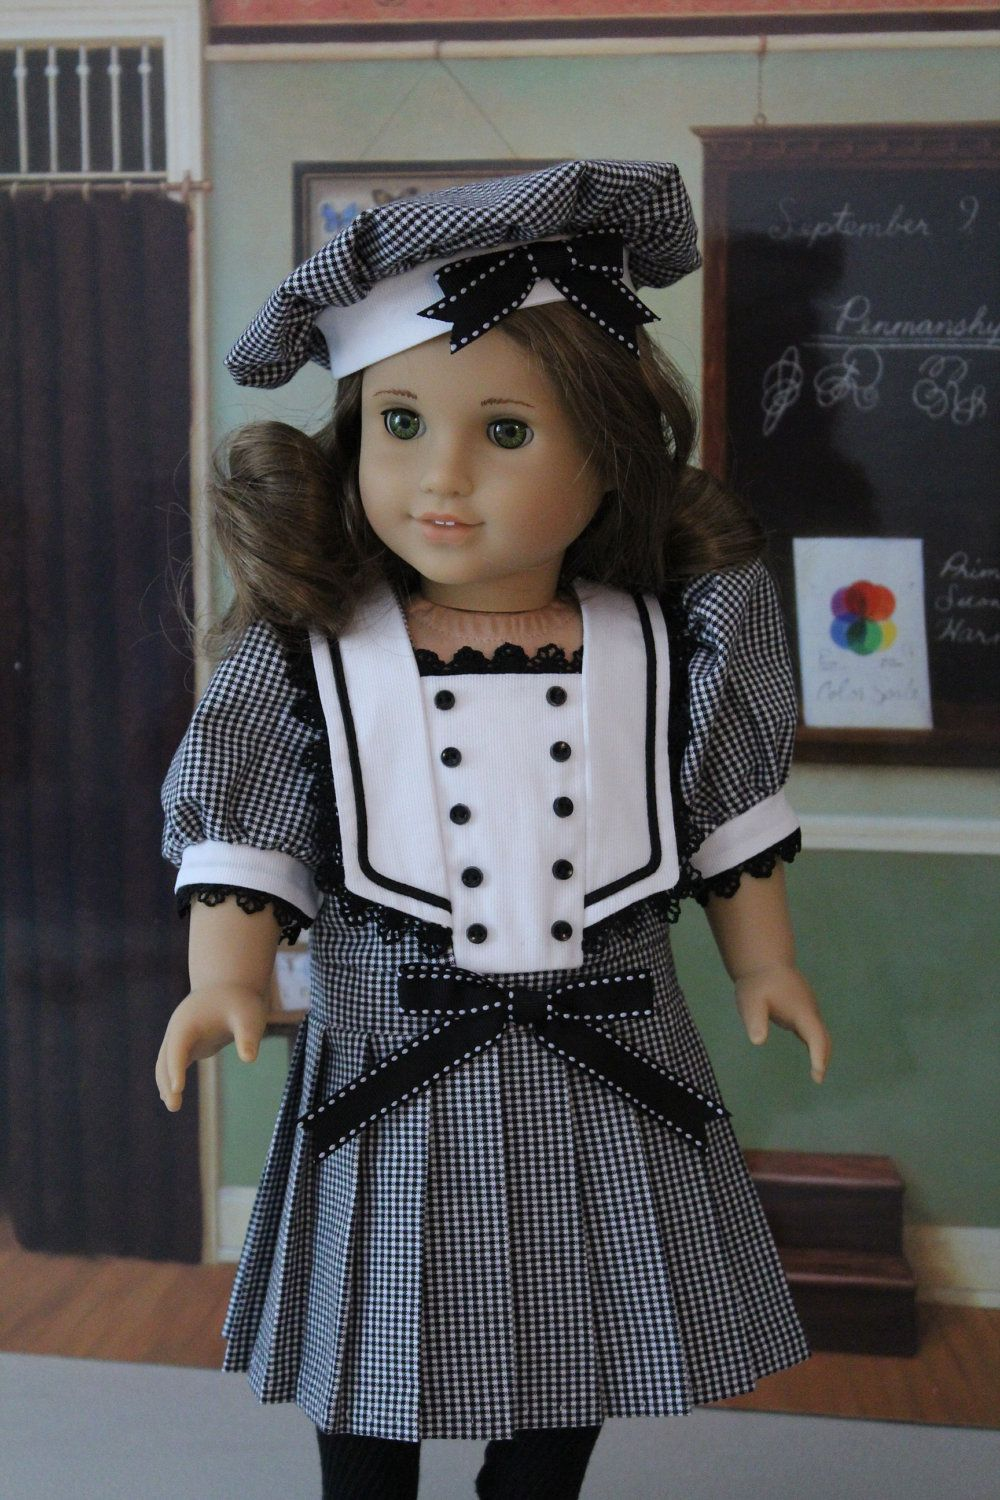 Black and White Middy Dress and Hat for American Girl Doll